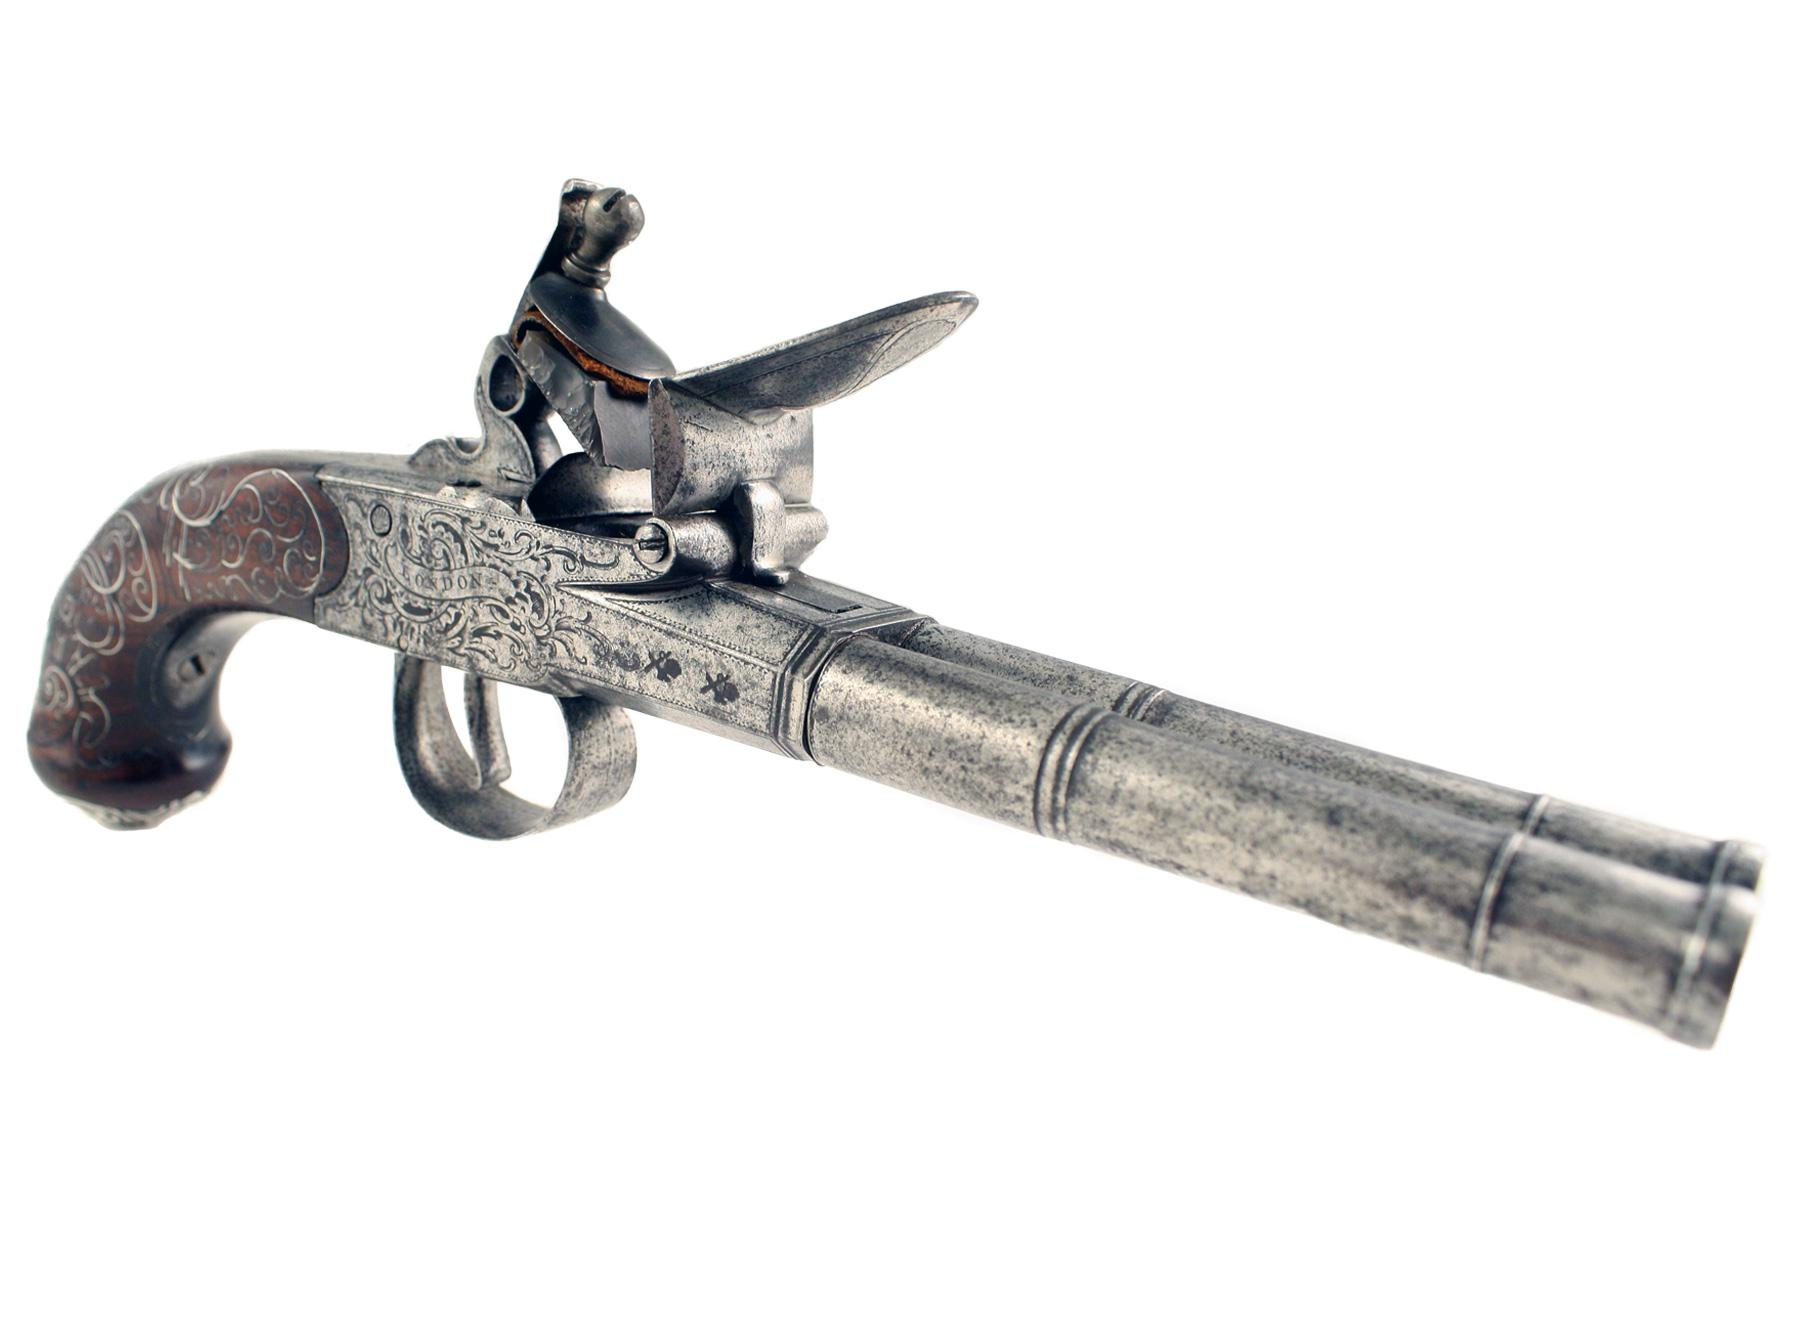 A Double Barrelled Flintlock Pistol by Barbar